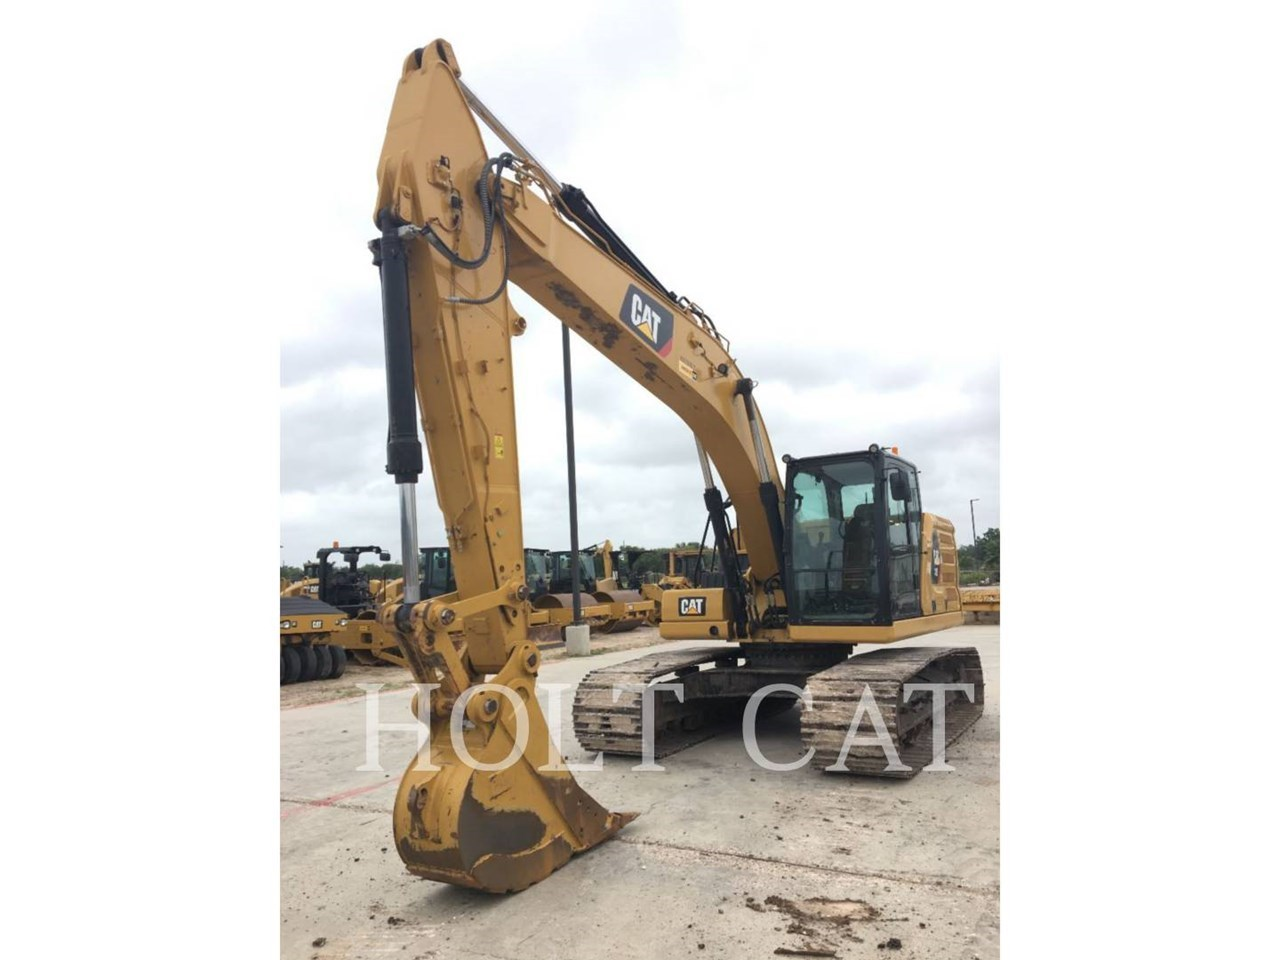 2018 Caterpillar 323 Image 2